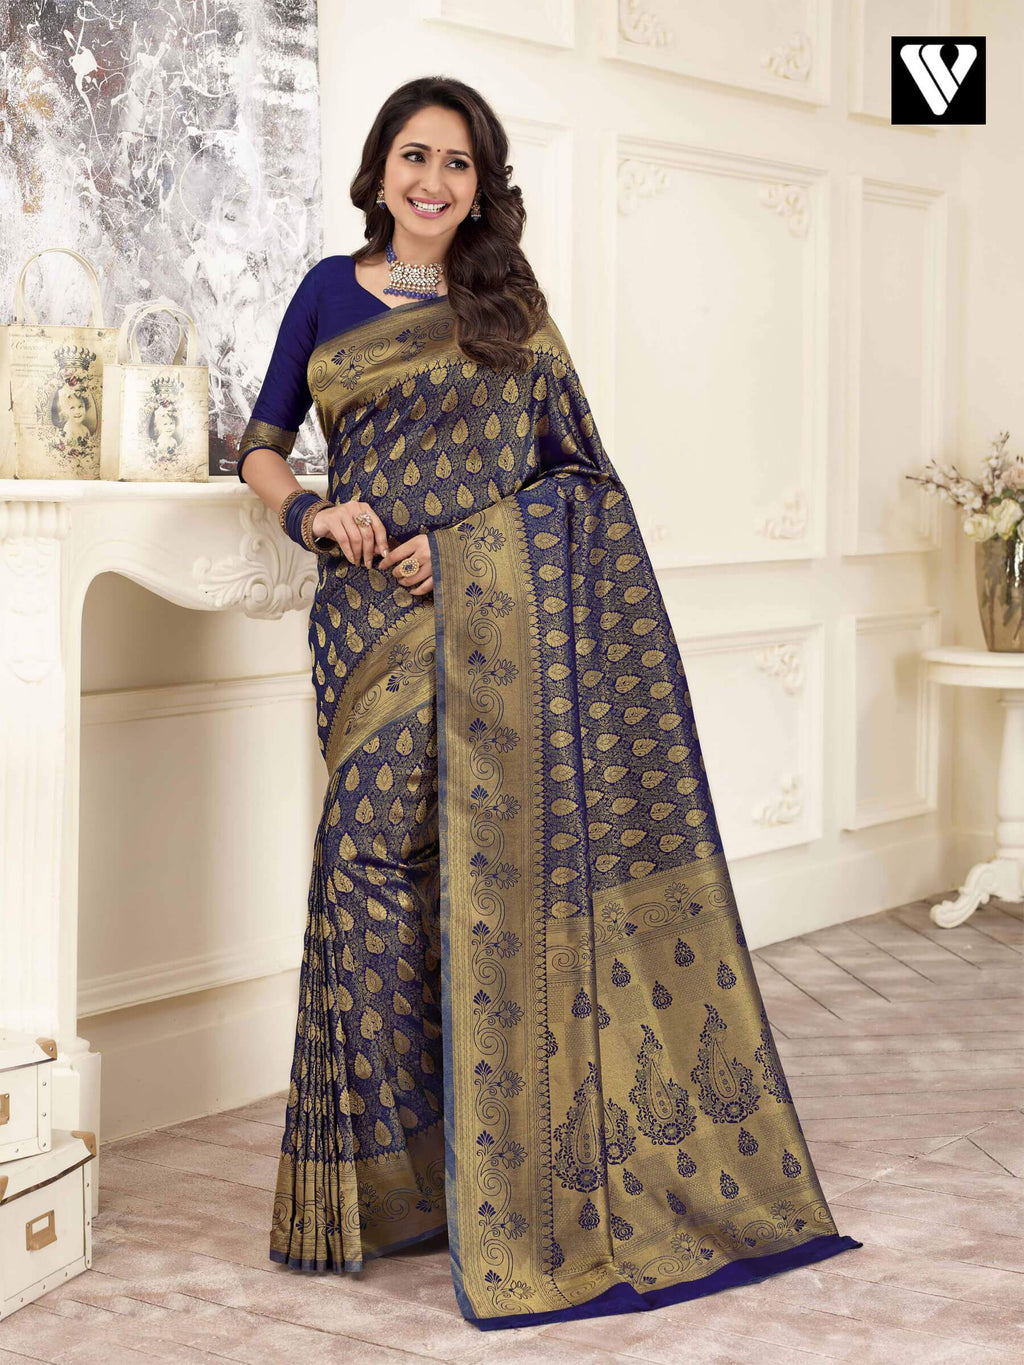 Wedding Wear Banarasi Art Silk Sarees In Blue Gold